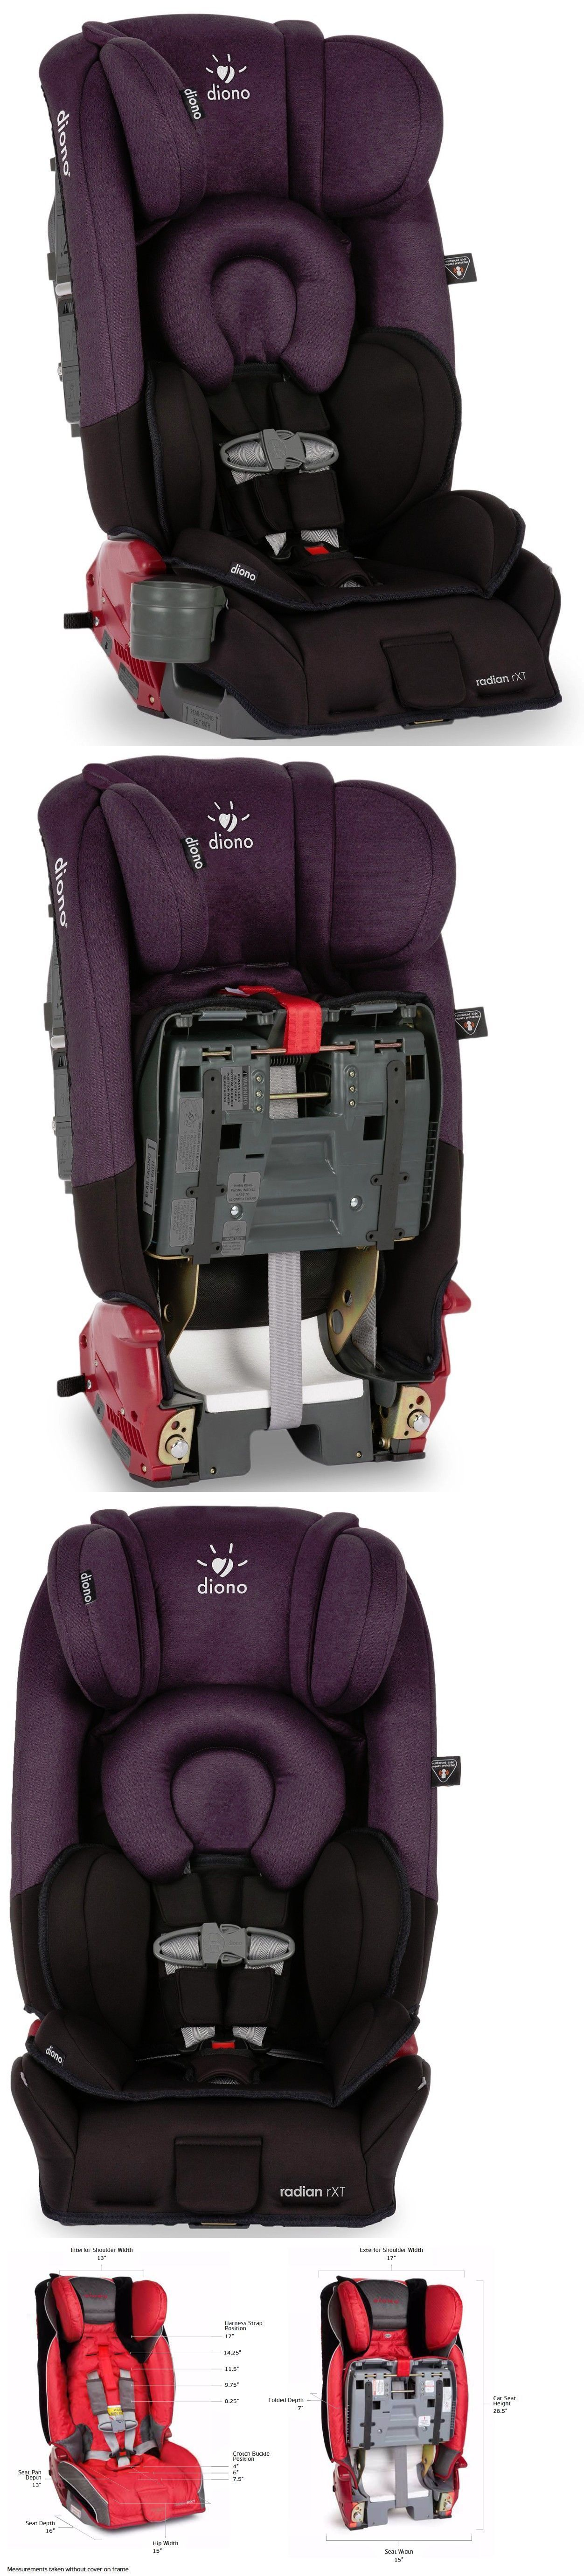 Booster to 80lbs Diono Radian Rxt Black Plum Convertible